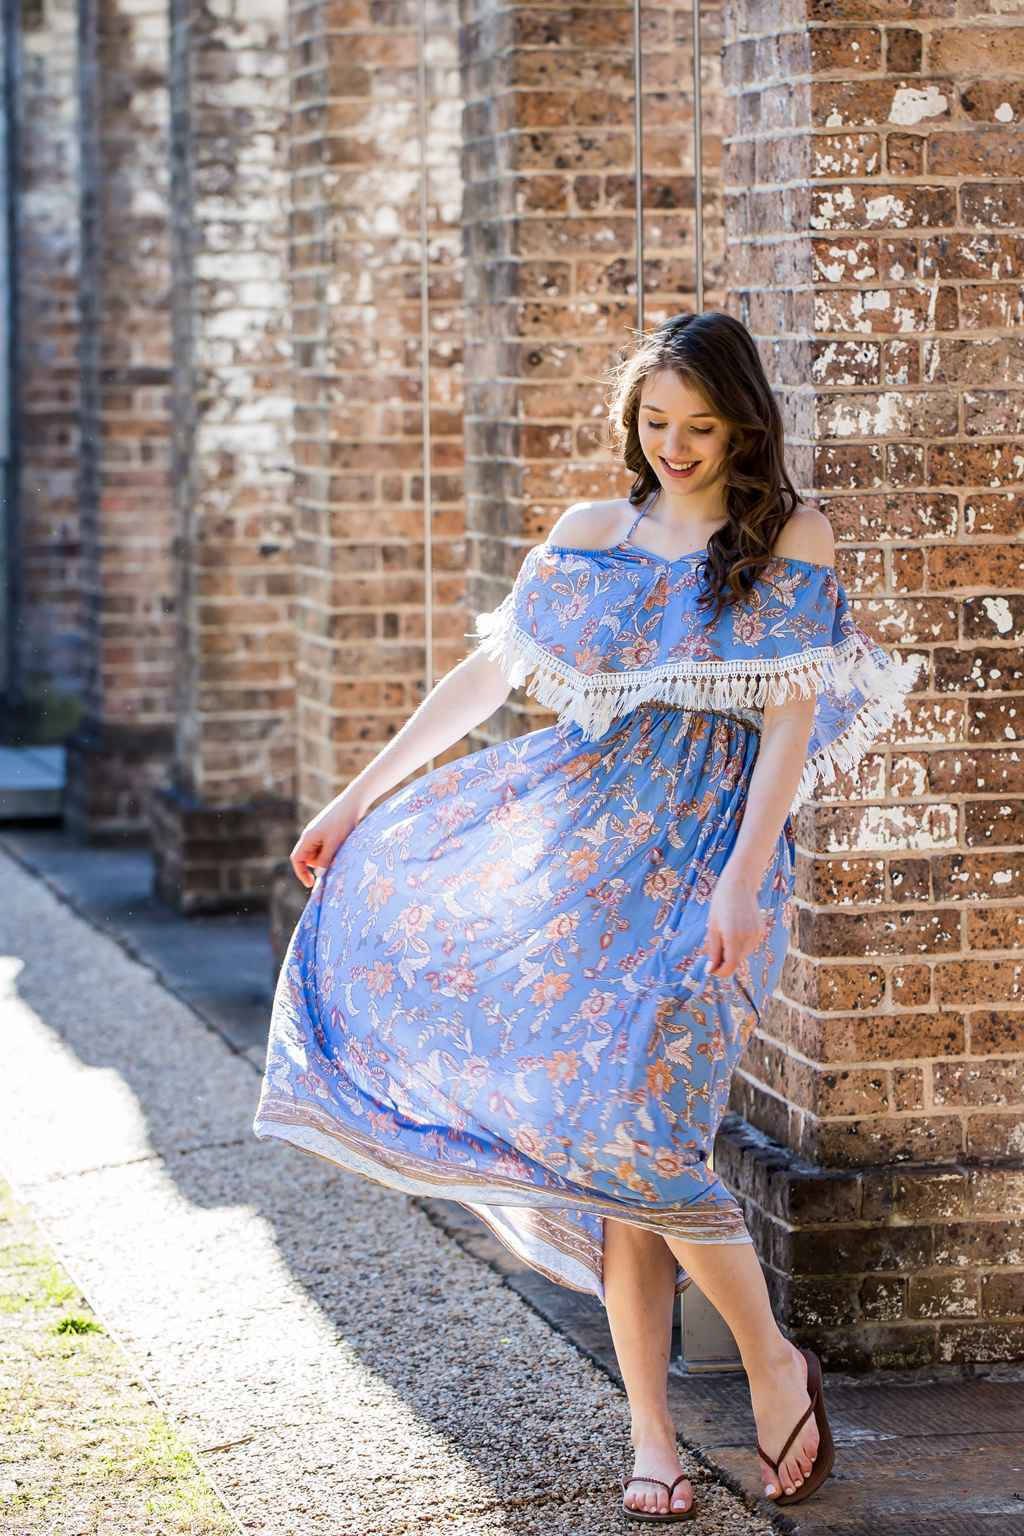 Skys Taking on Rosy Hue Floral Maxi Dress【AU Stock】